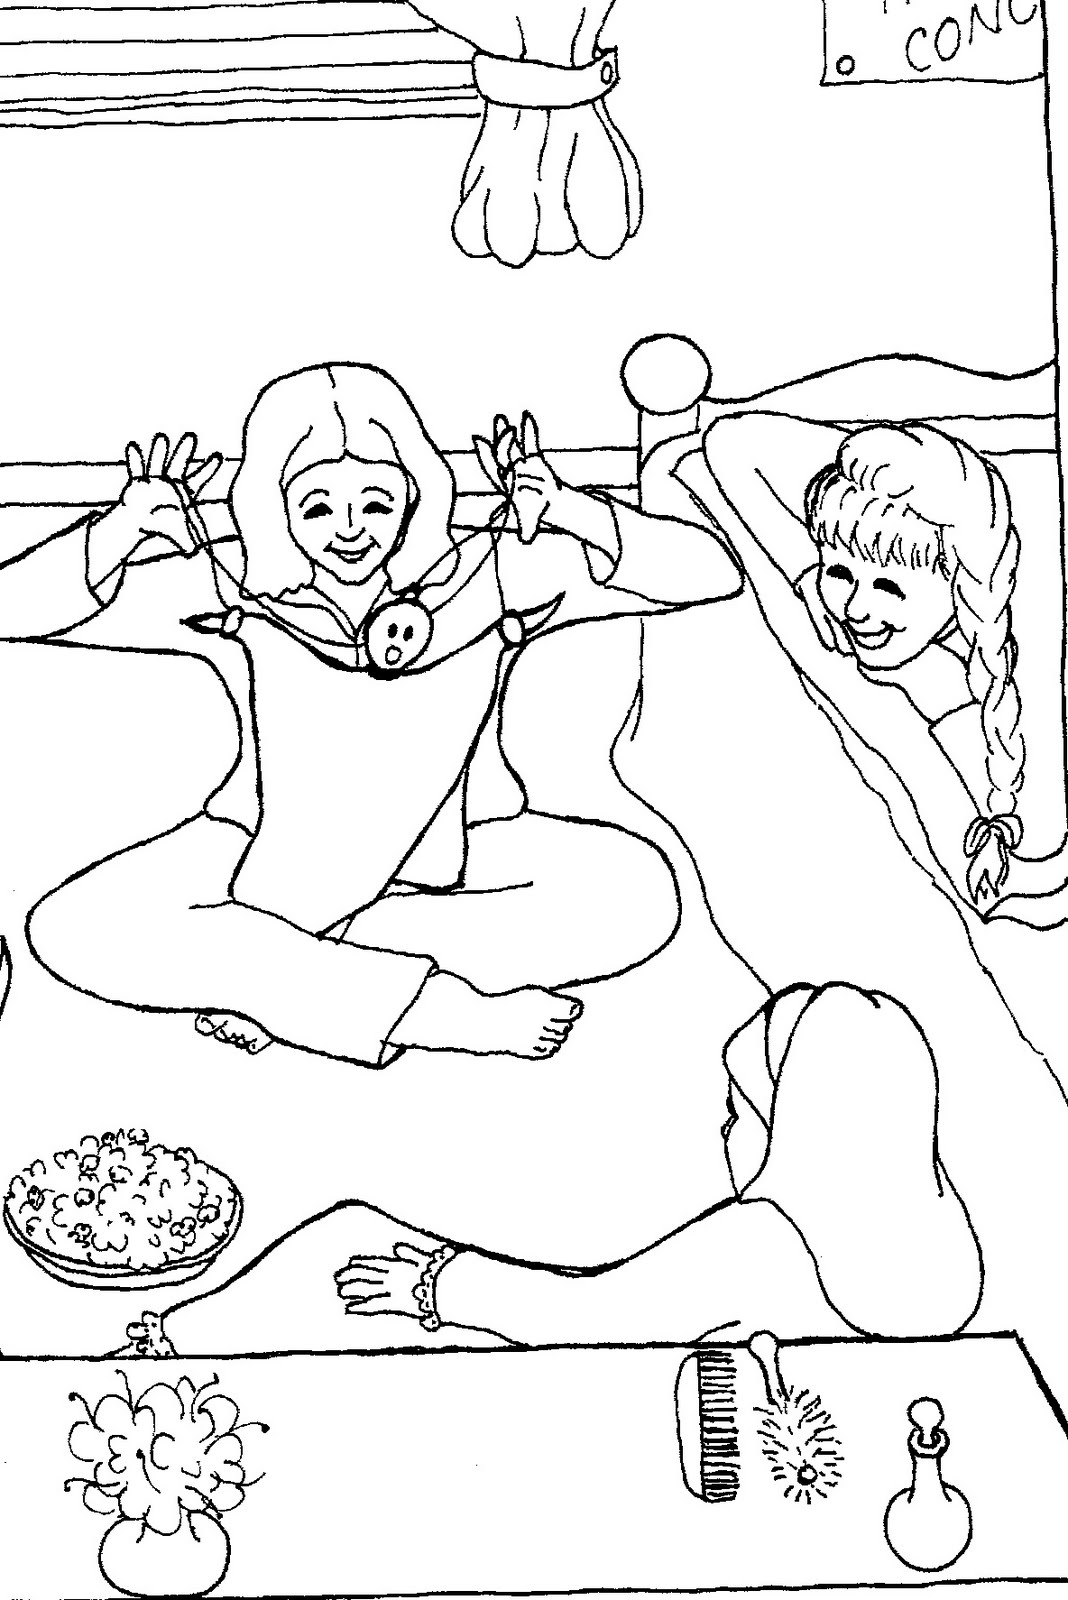 sleepover coloring pages sleepover drawing at getdrawings free download sleepover pages coloring